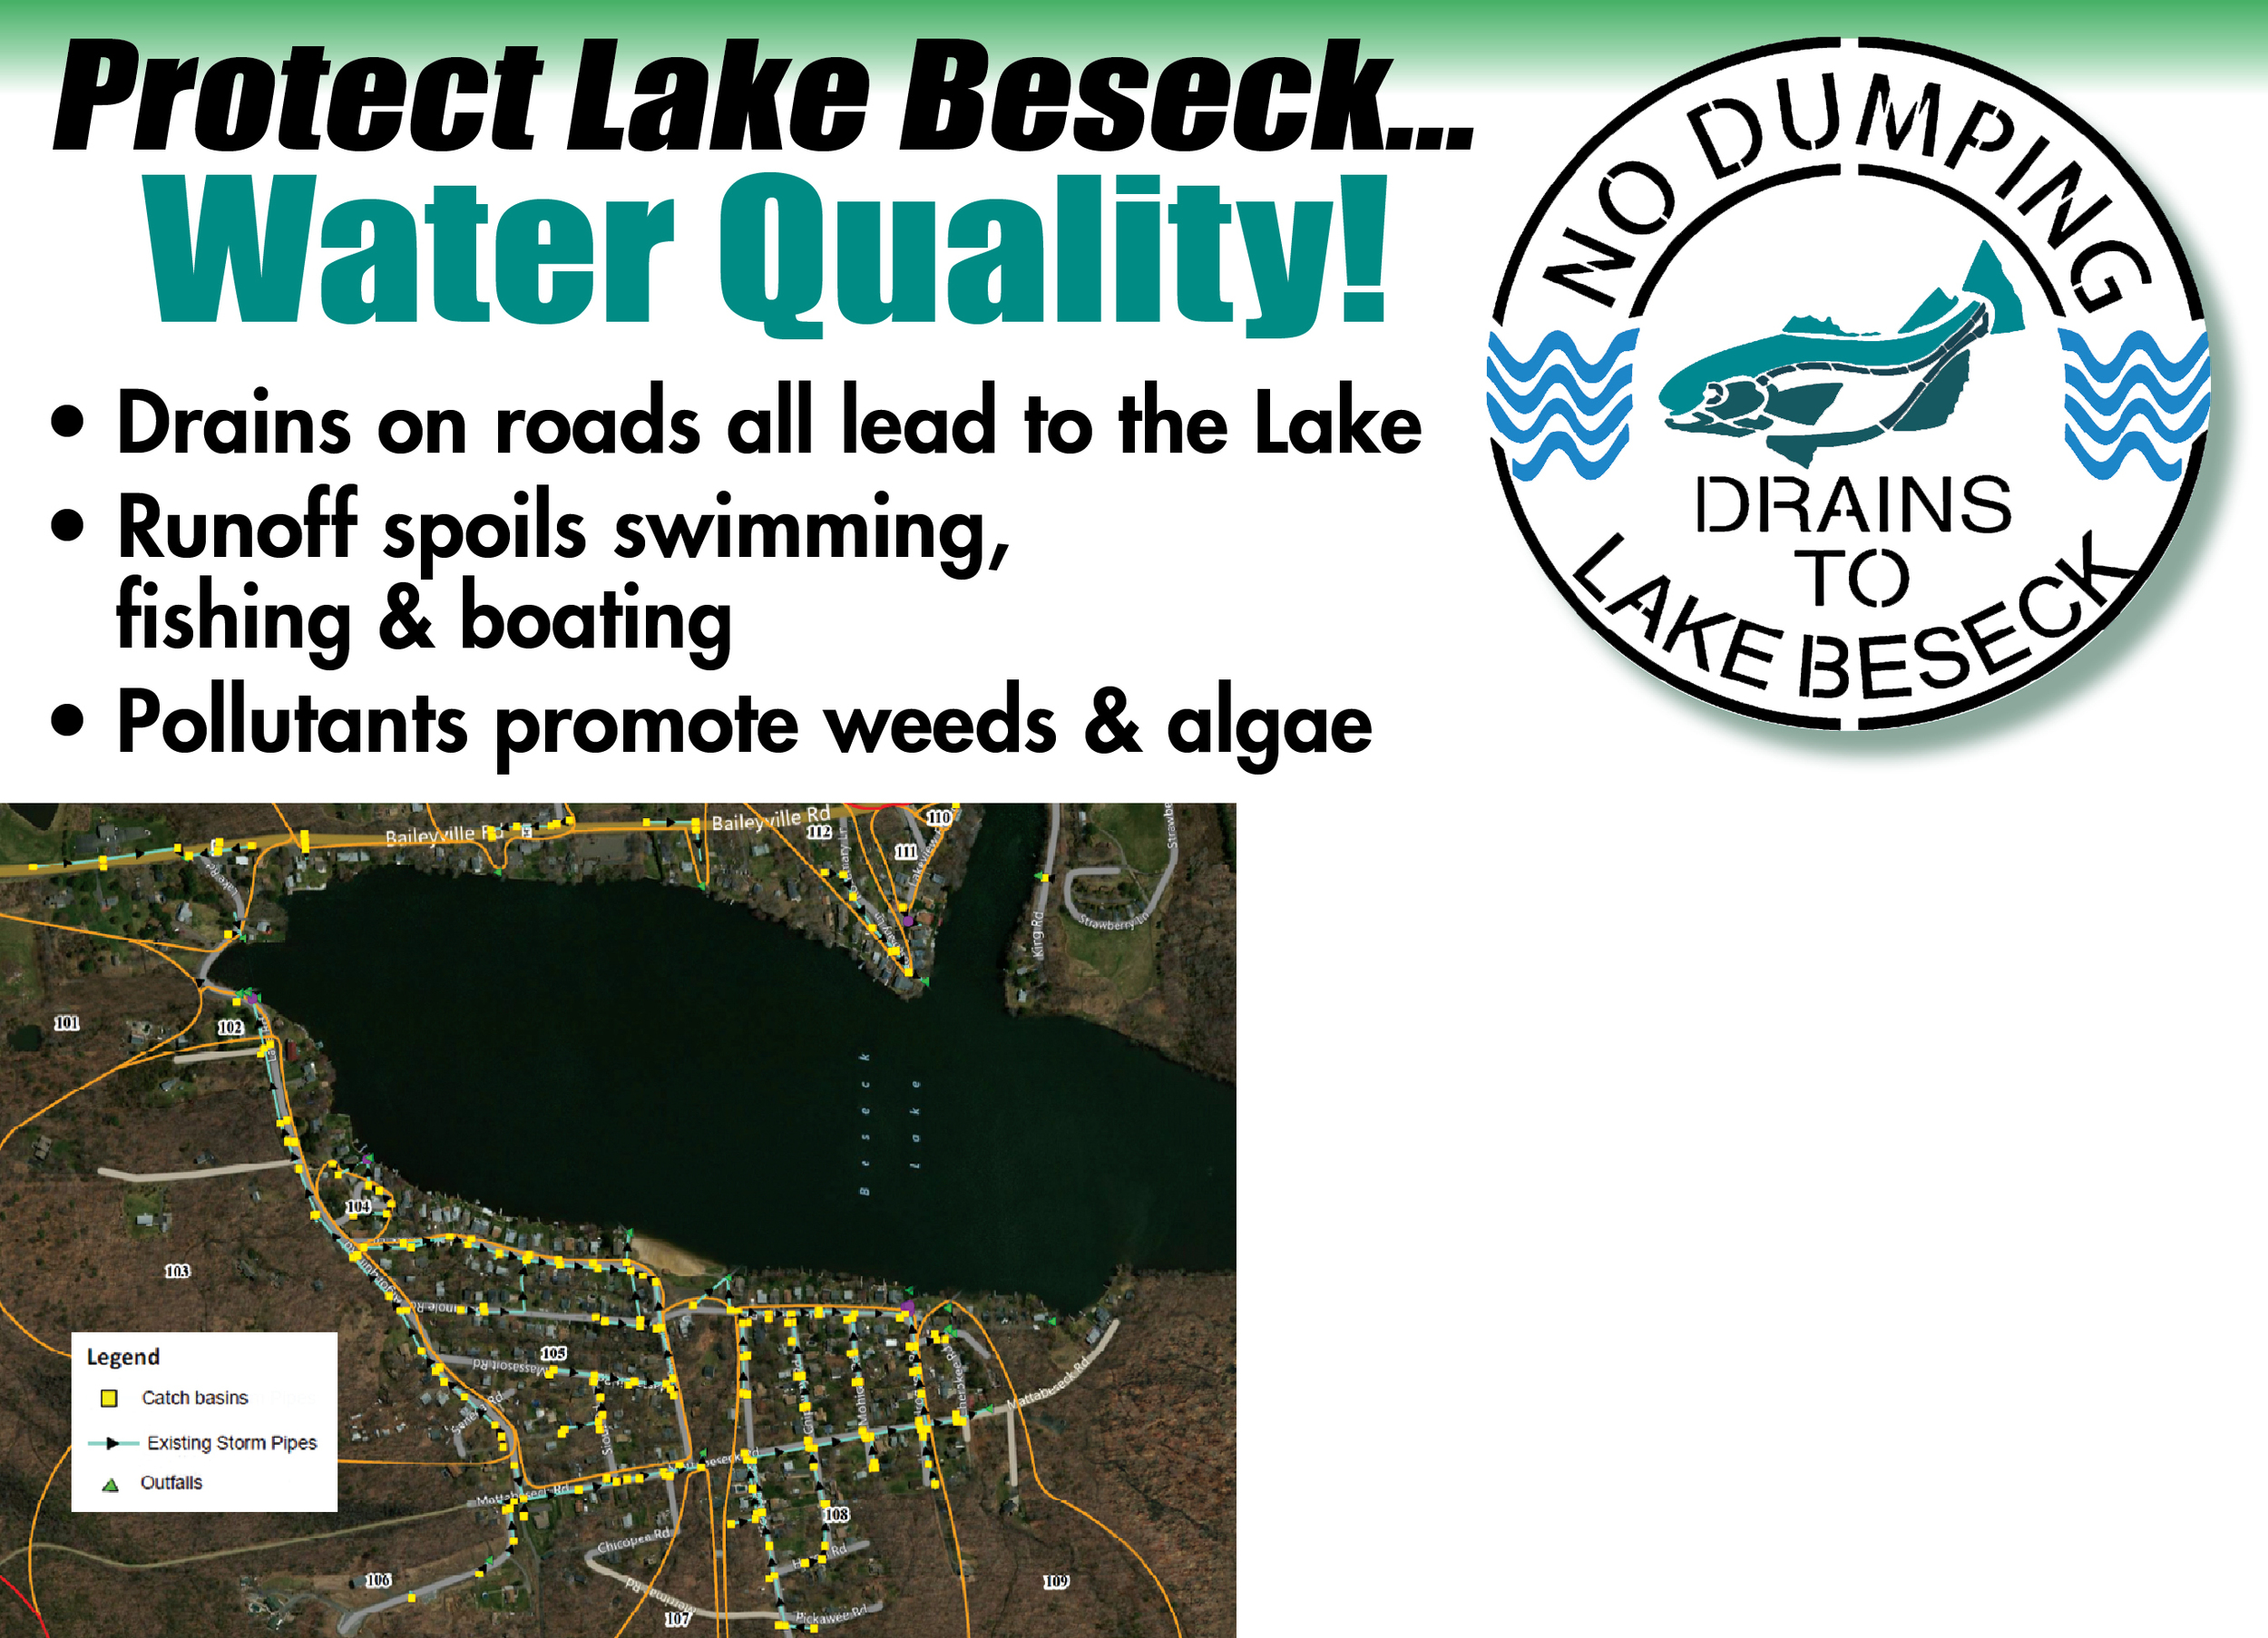 Lake Beseck Postcard back 2015.jpg